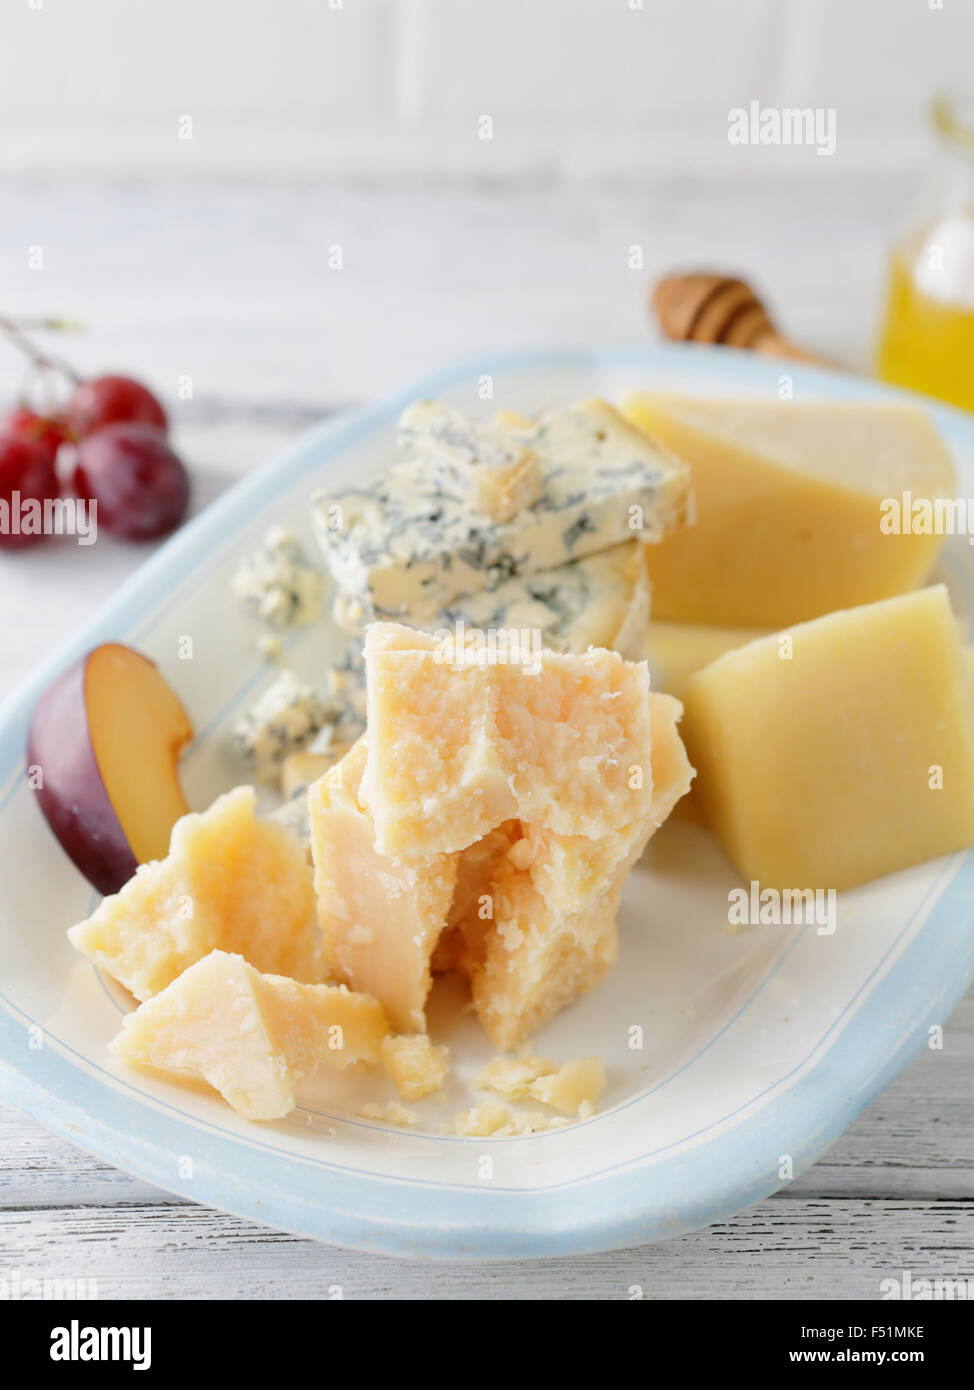 chucks of cheeses close-up, food Stock Photo